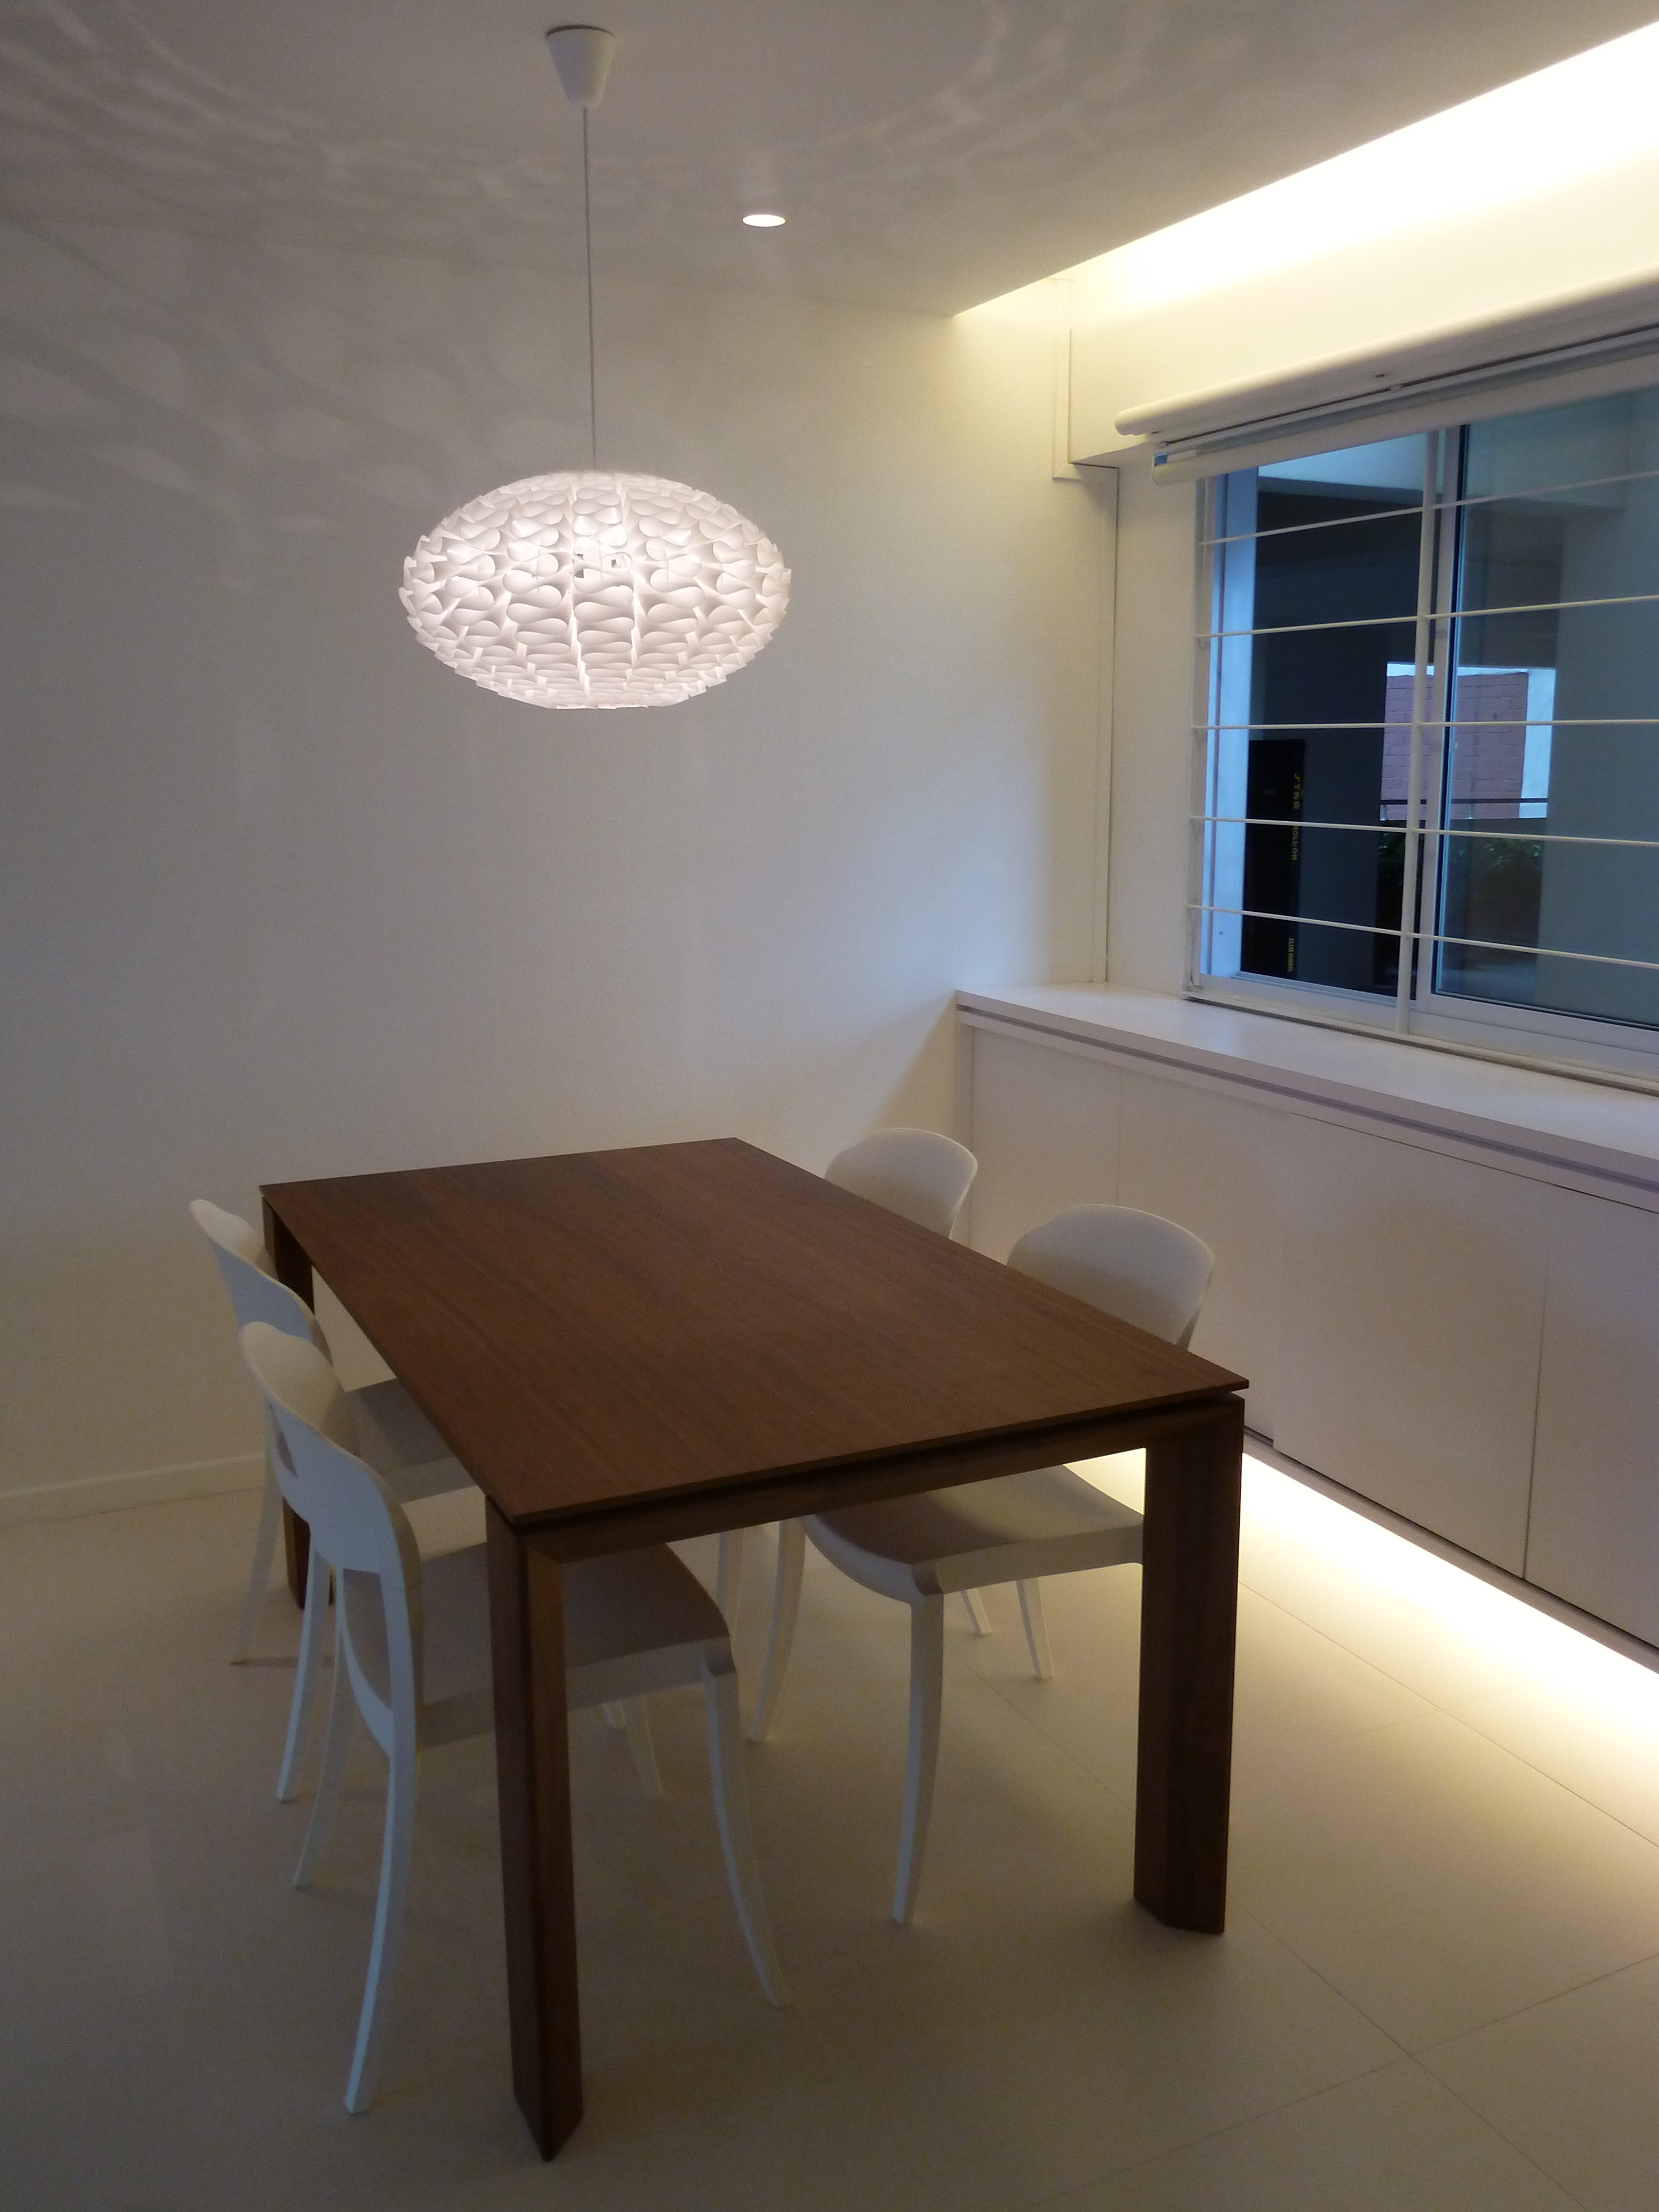 Completed Pics Dining Room Our EM Renovation Experience